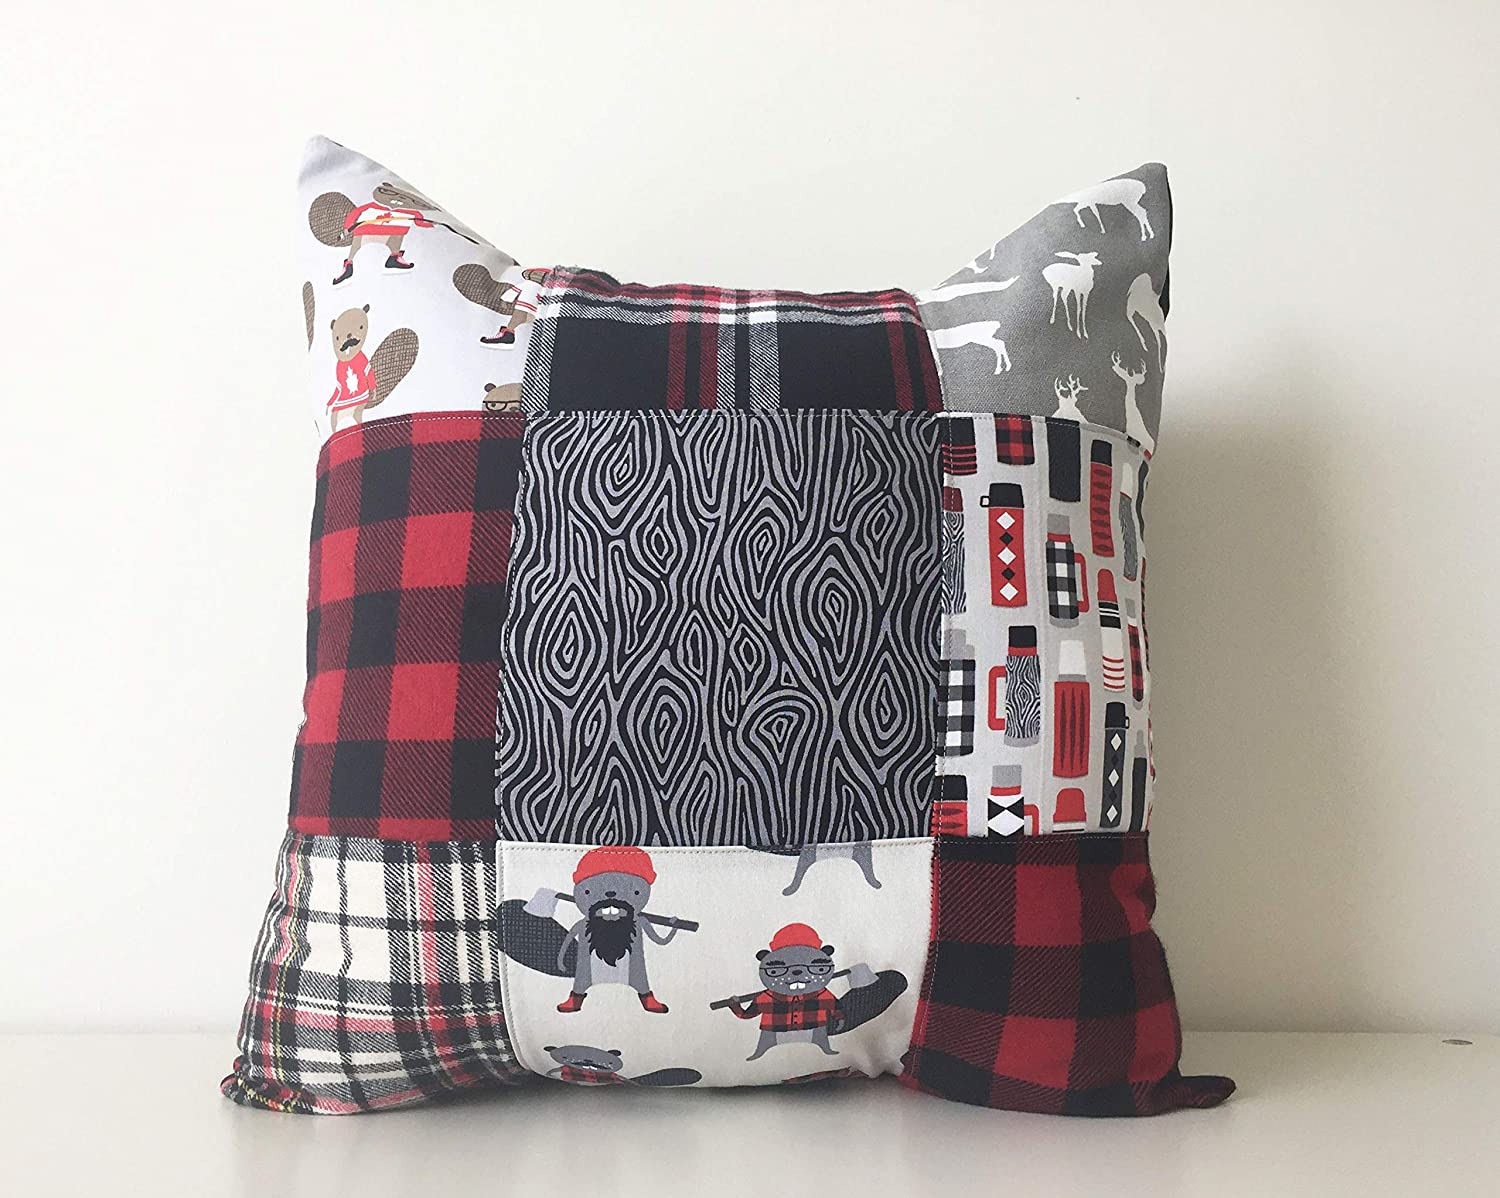 Patchwork Pillow Cover, 18x18, Canada Pillow, Buffalo Plaid Flannel Cushion Cover, Lumberjack Rustic Cottage Decor, Beavers, Deer, Man Cave 18x18